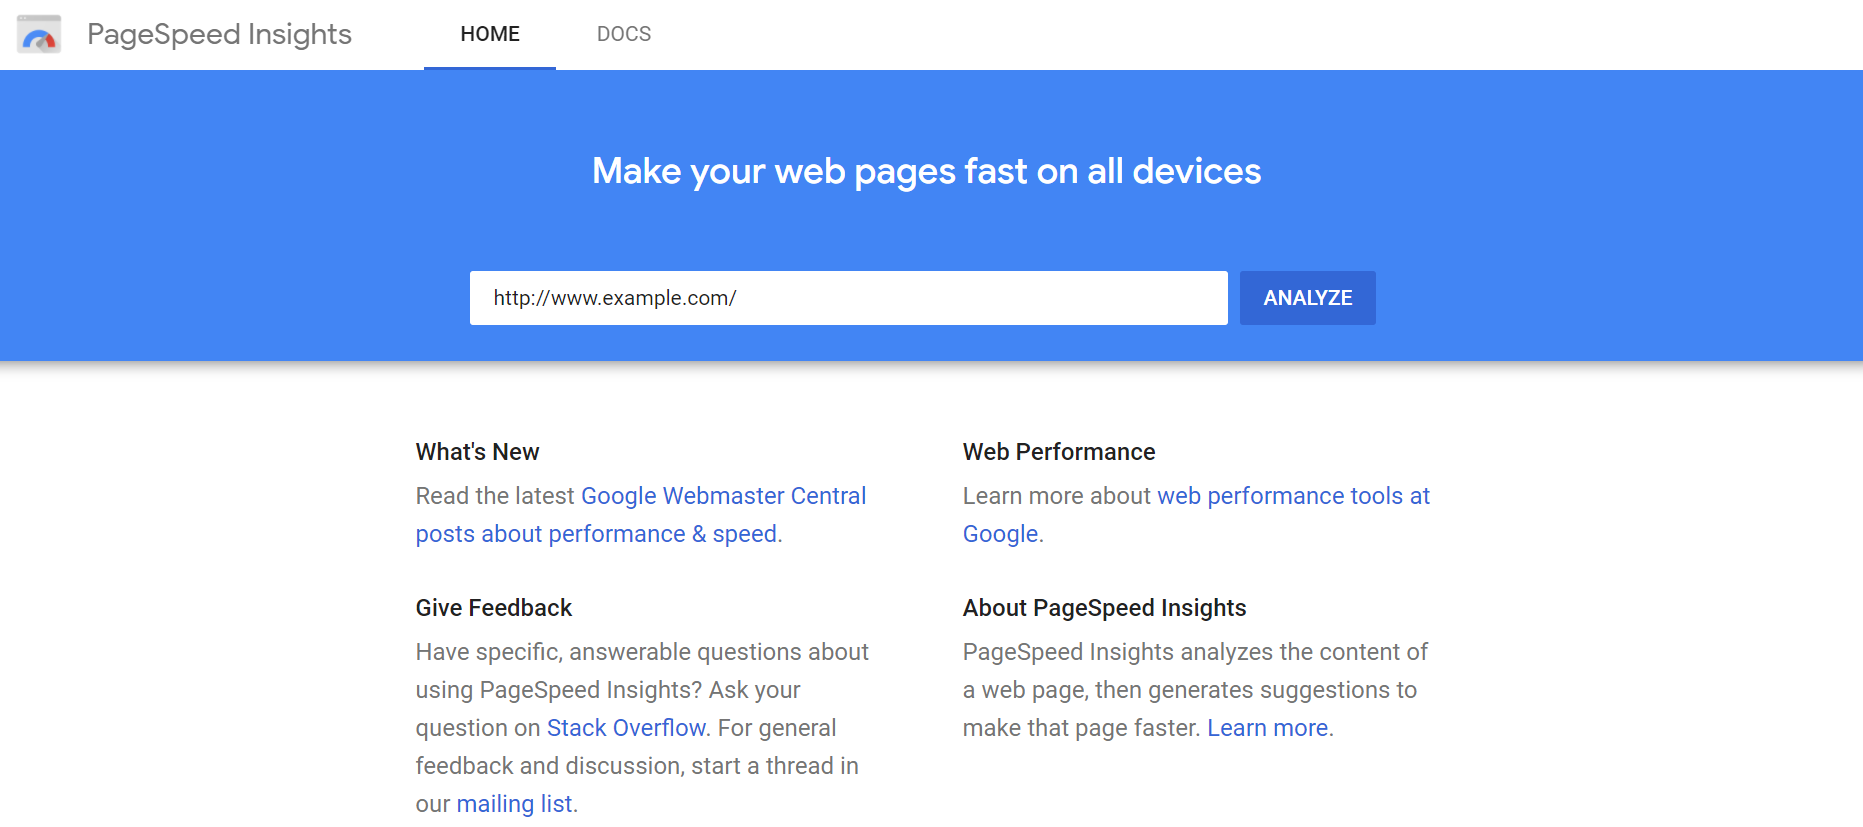 Make your page faster with suggestions from PageSpeed Insights